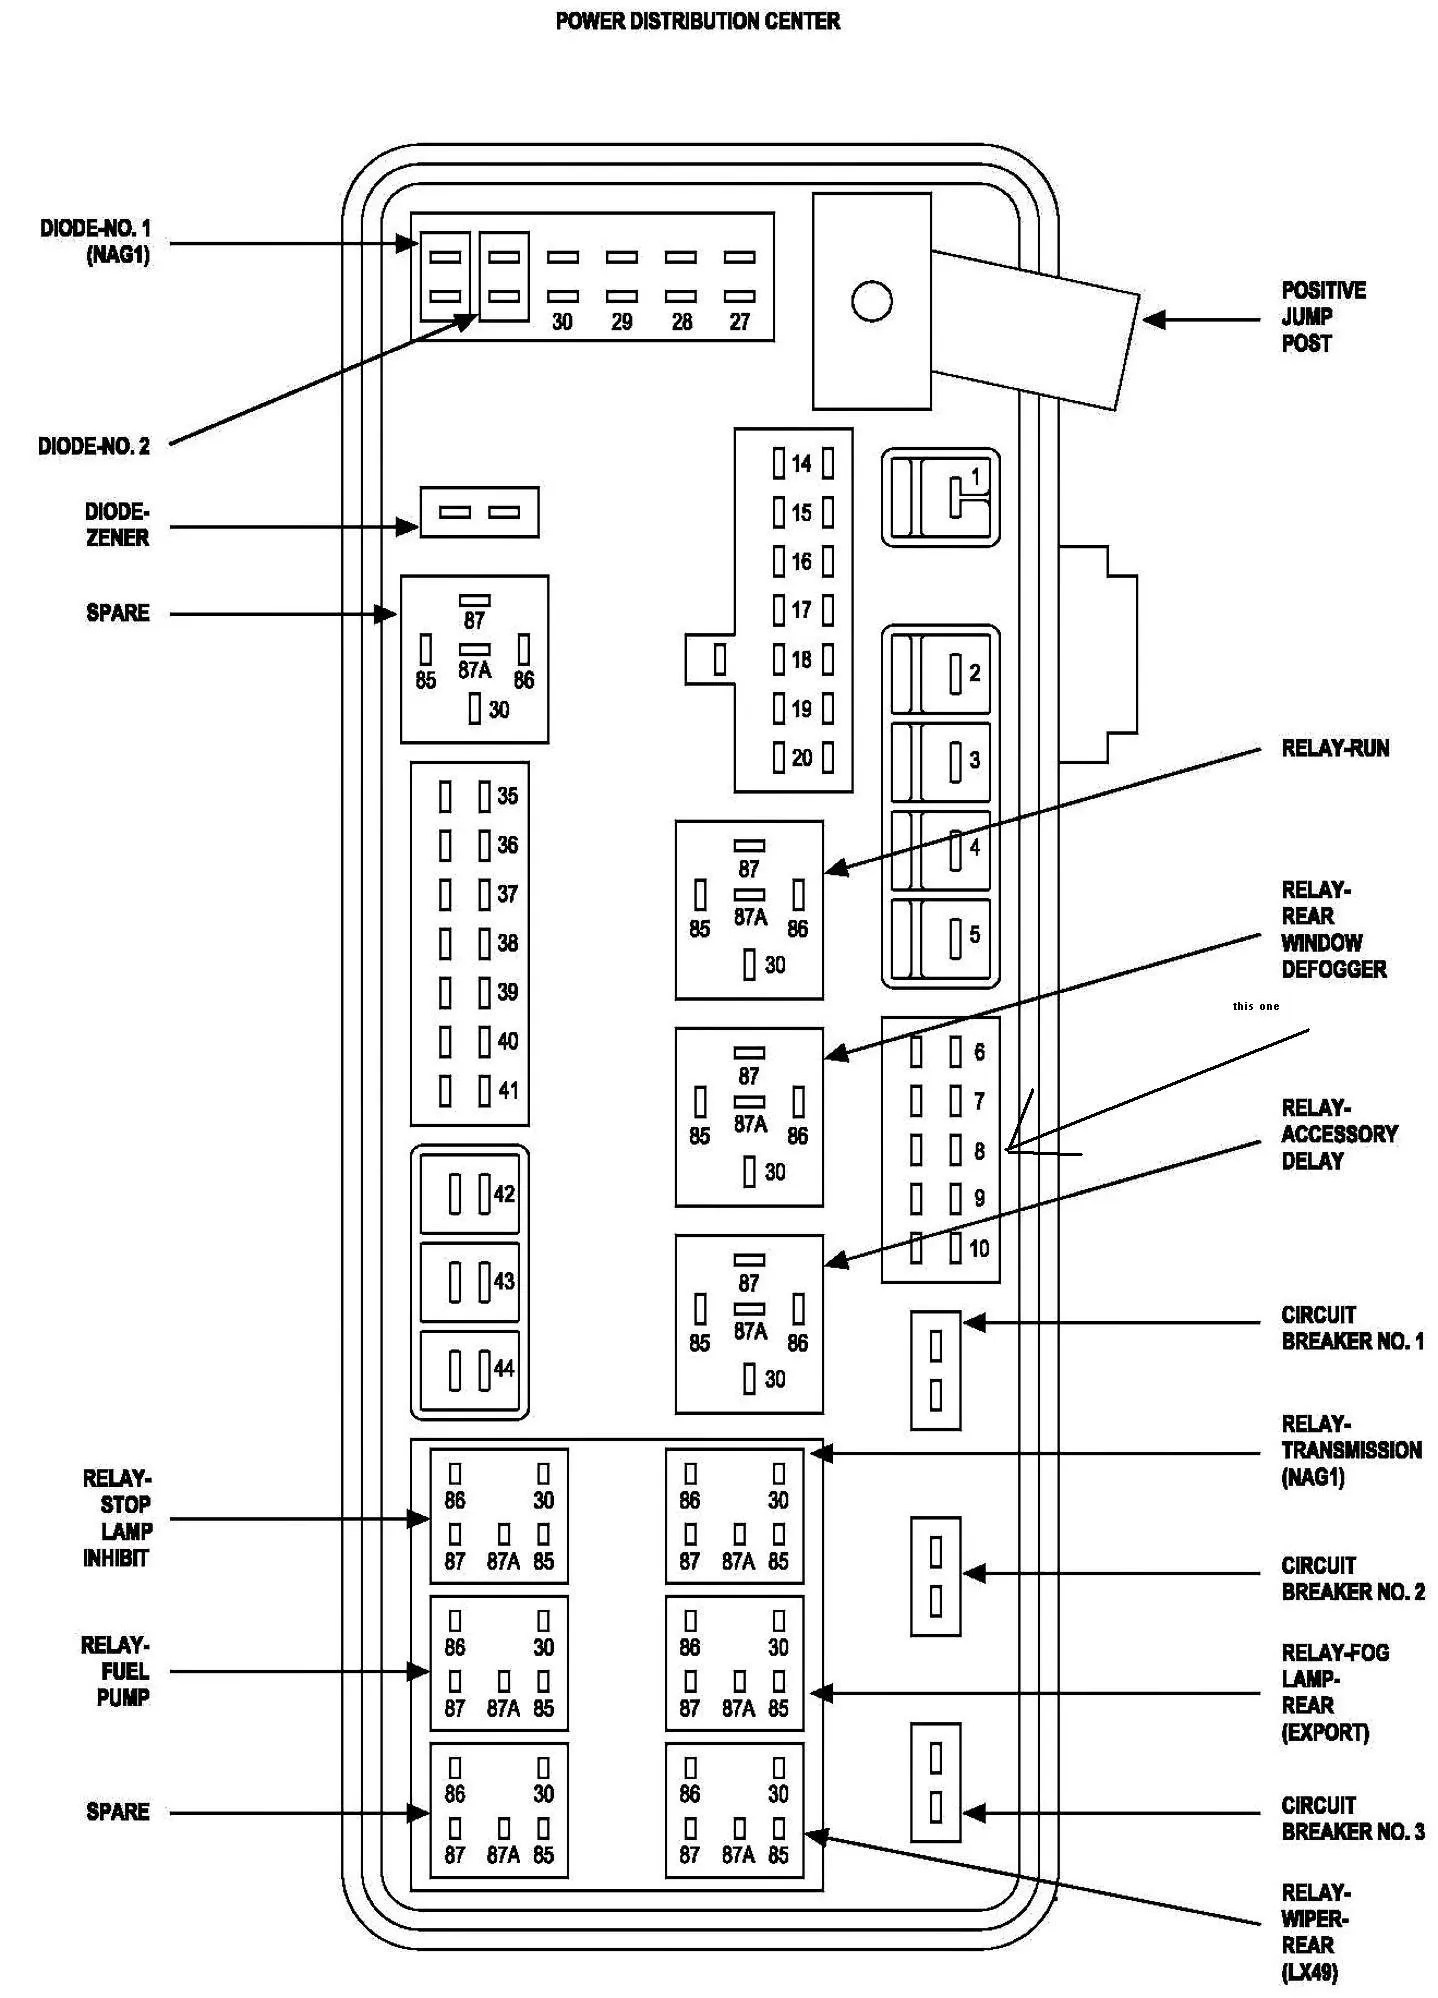 hight resolution of 2011 dodge ram 3500 fuse box diagram wiring diagram review 2011 dodge ram 1500 fuse box 2011 ram 1500 fuse box